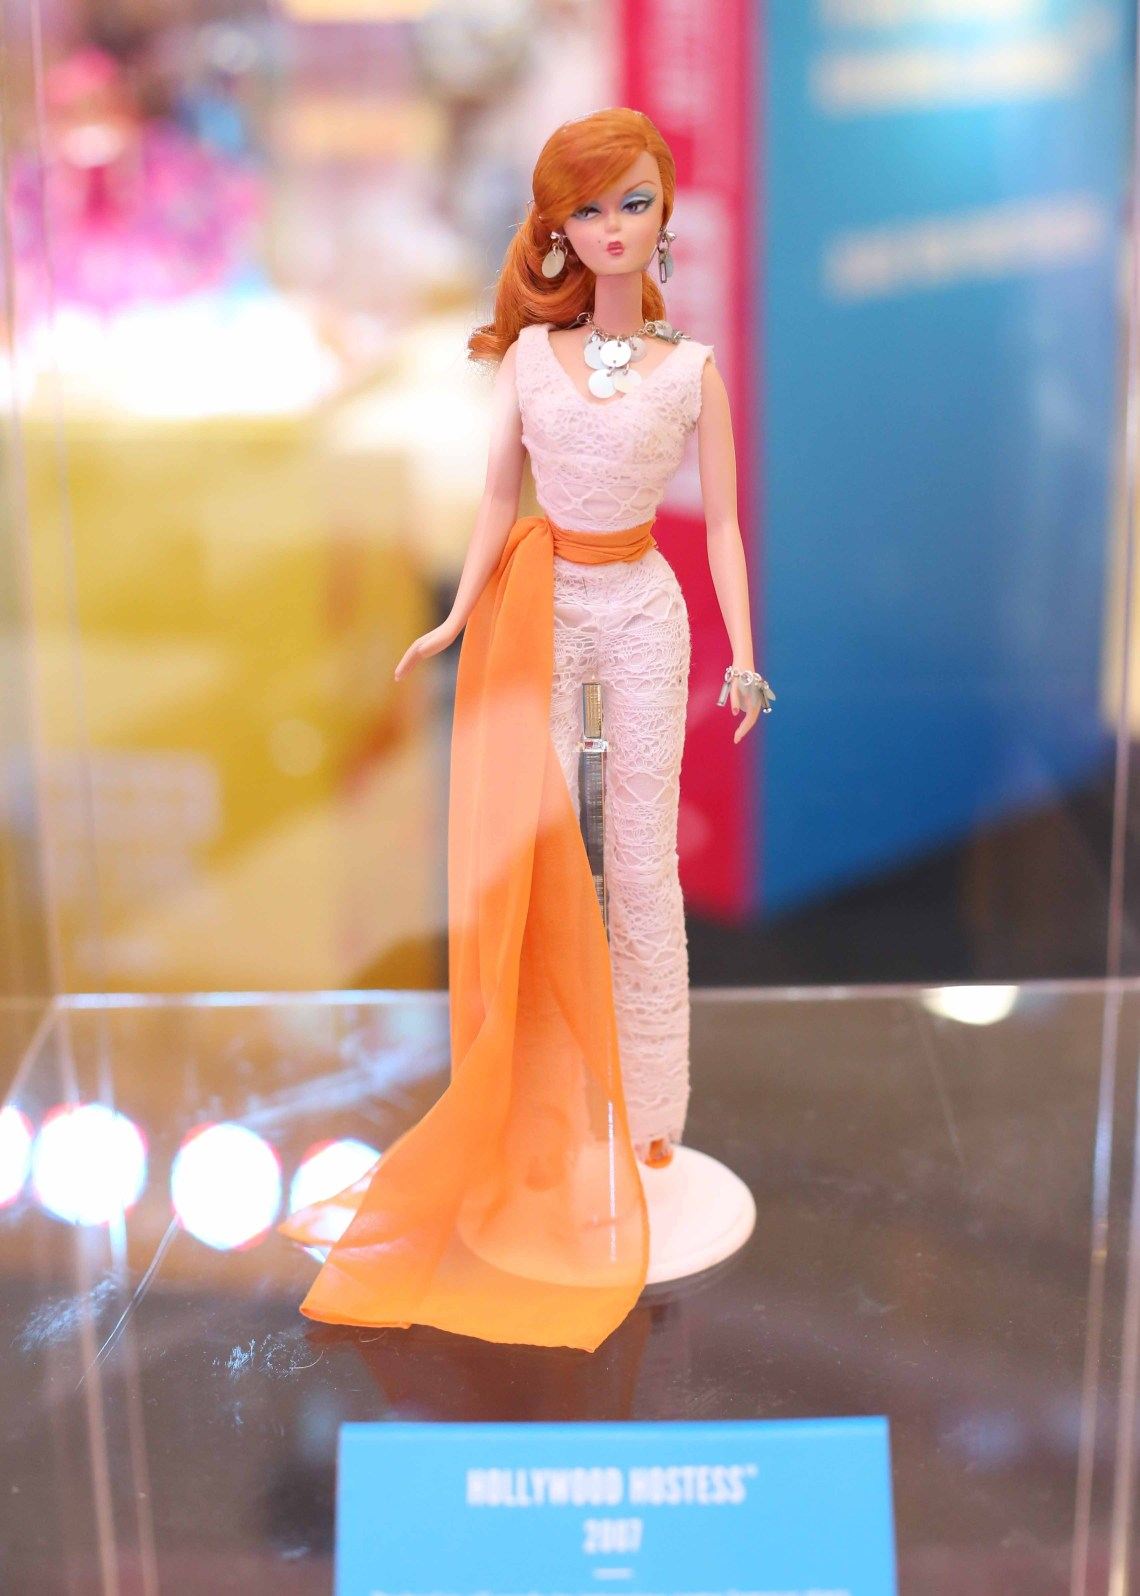 BARBIE_ World of Endless Possibilities Exhibition 12_smartdory 2016